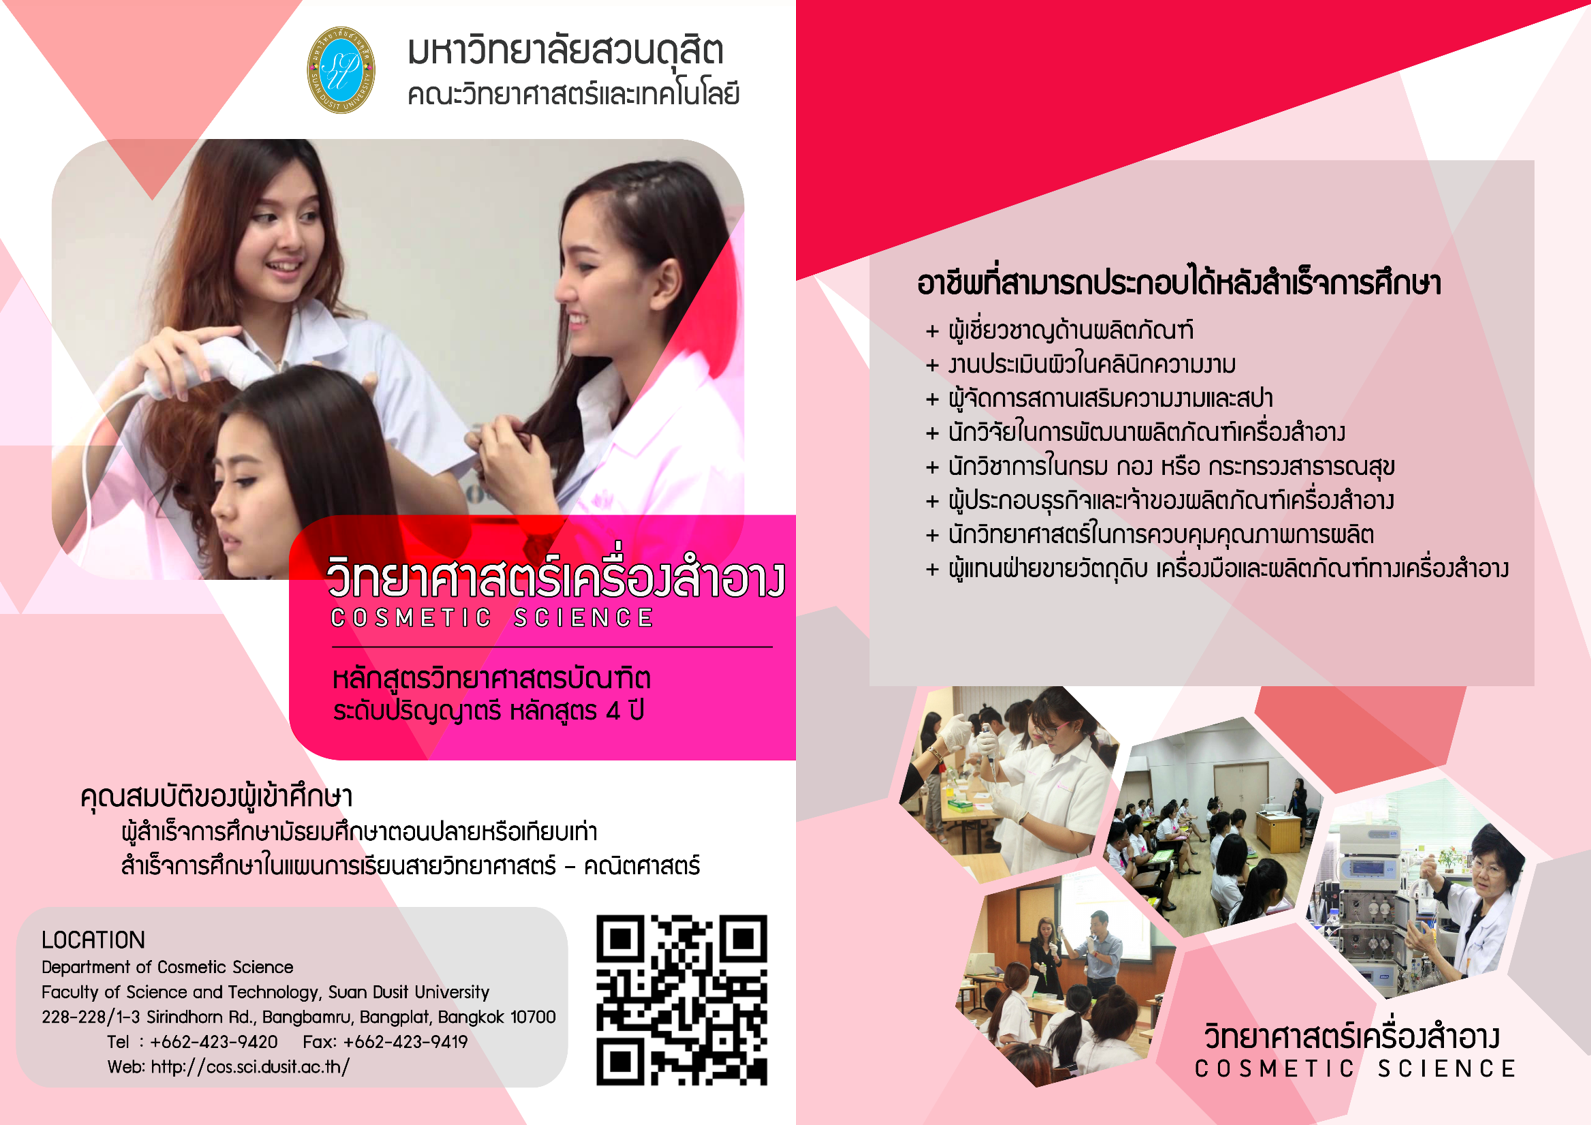 http://cos.sci.dusit.ac.th/wp-content/uploads/2017/05/Poster-Cosmetic-Sci.png